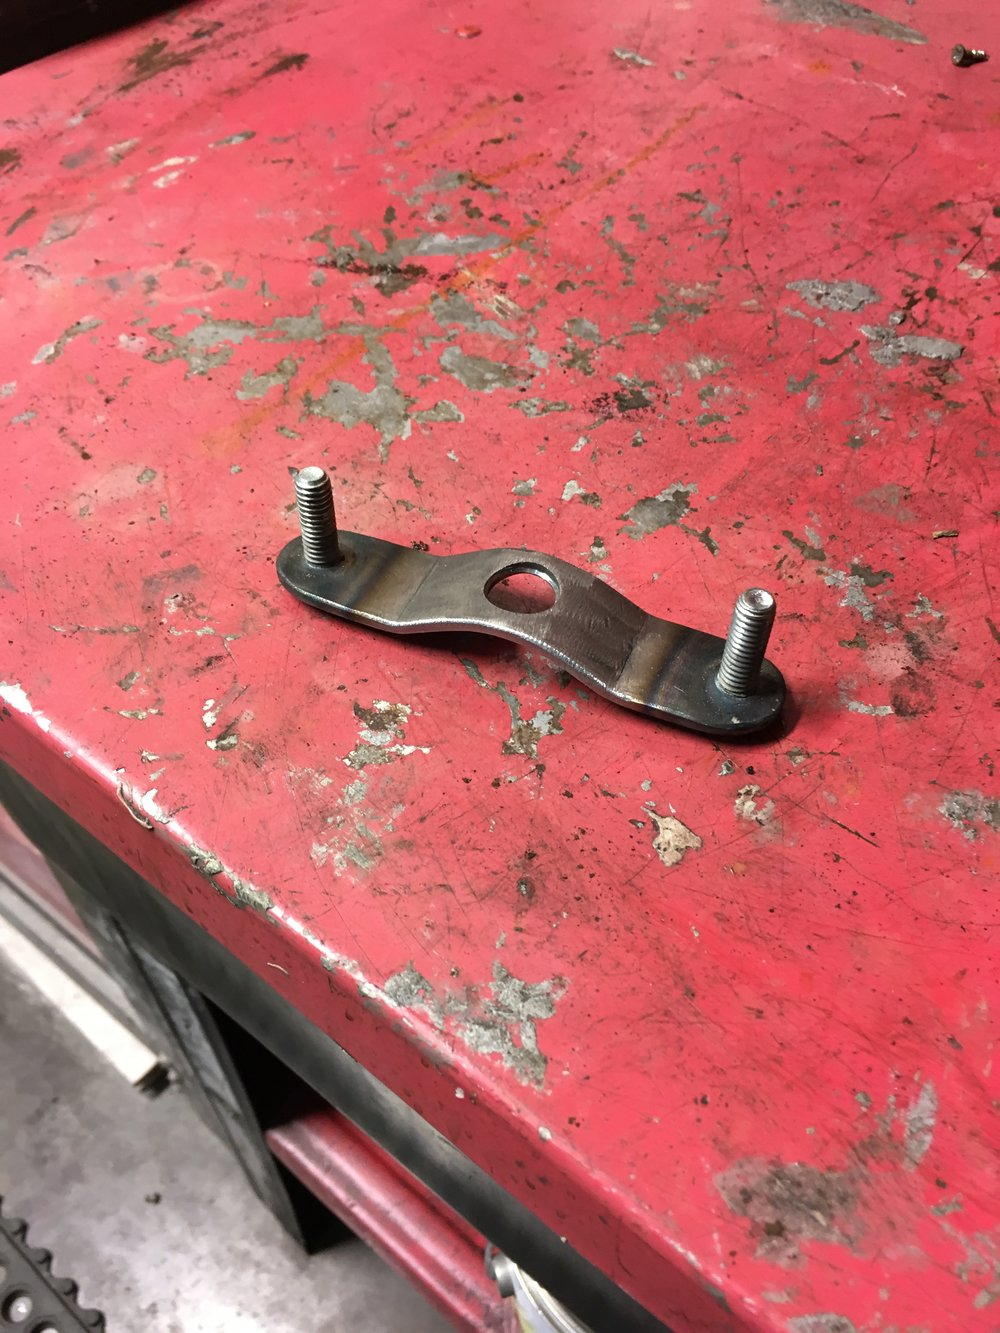 The rear tank hold-down bracket waiting to be welded on. I usually try to get all the brackets made while the bike is in the assembly area of the shop and then get them all welded on at once, reducing the time the bike is in the metal room potentially getting exposed to grinding dust.